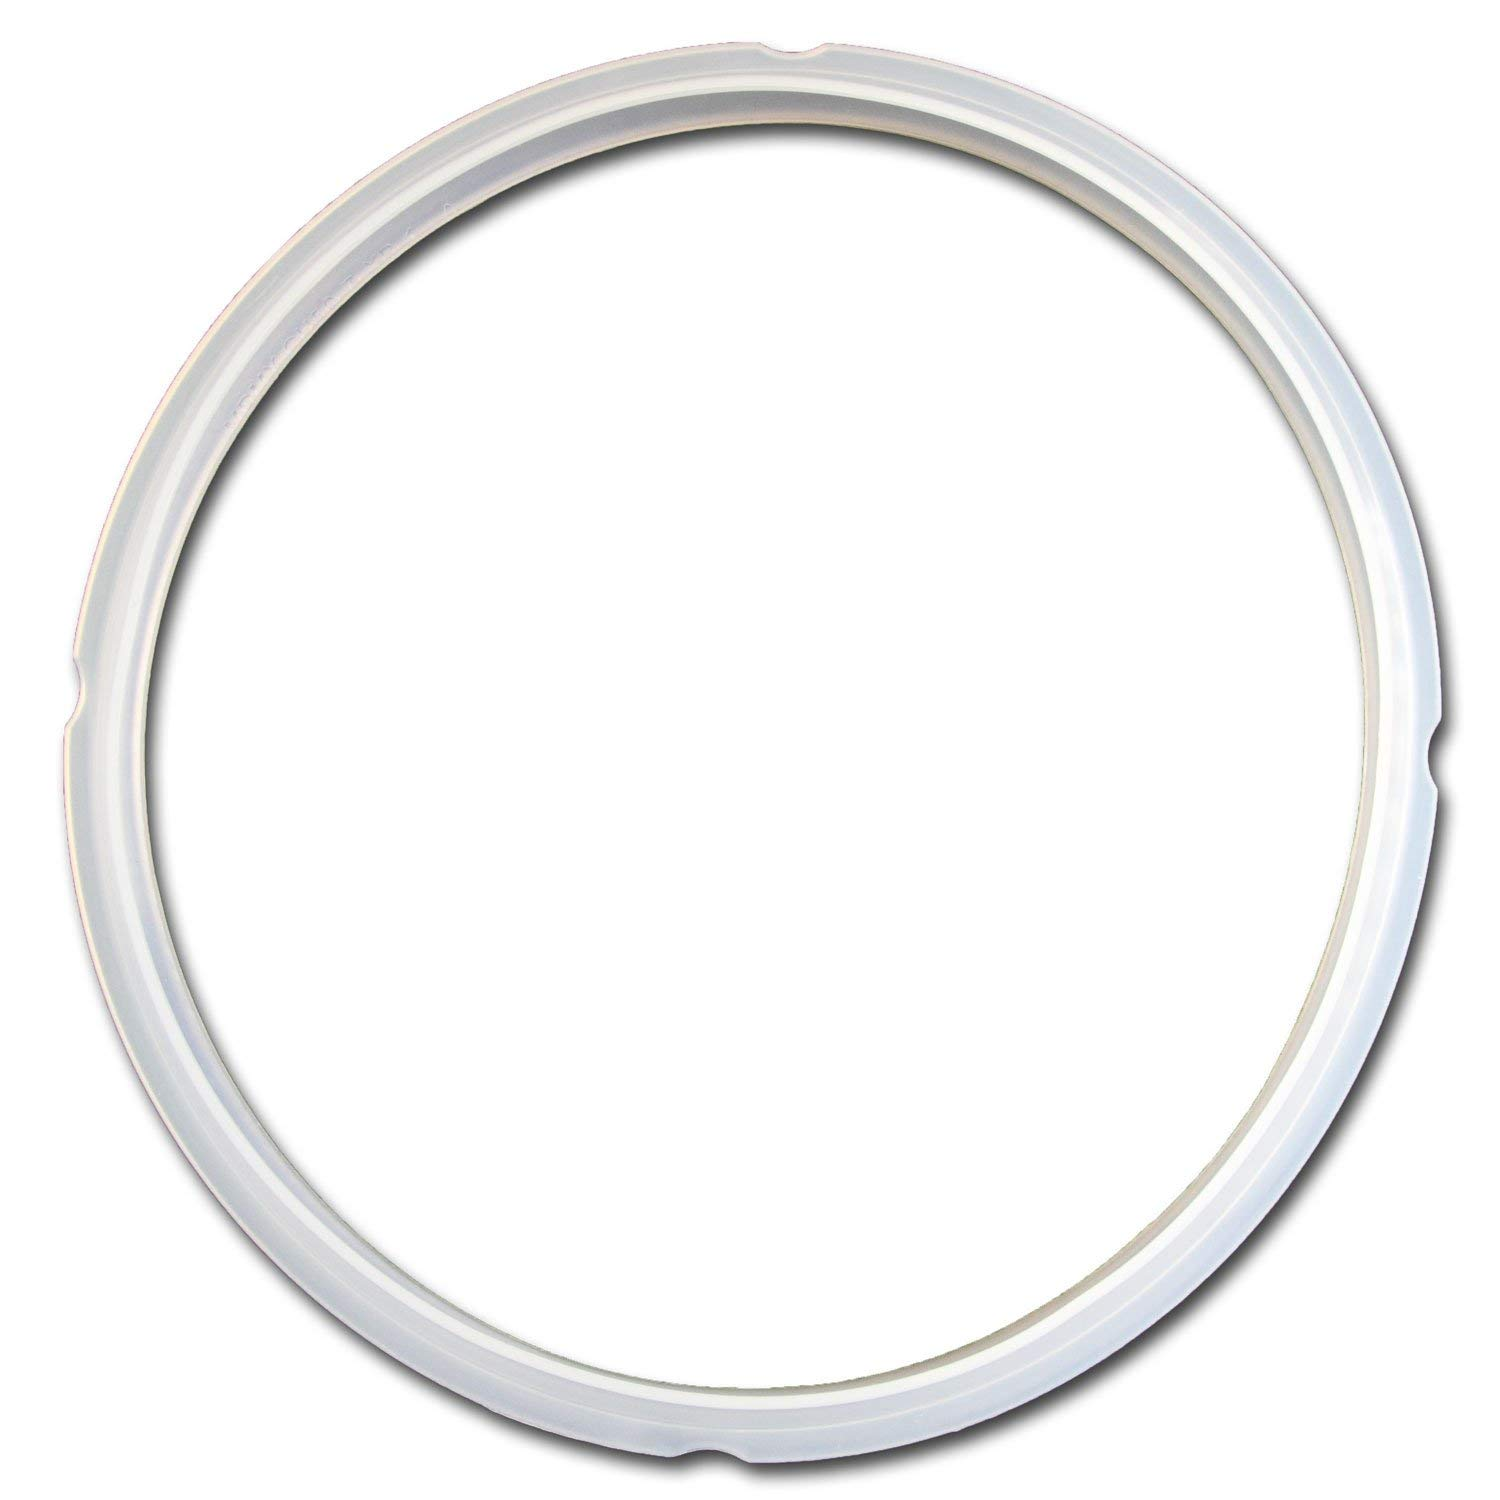 Sealing ring or seal ring for MIDEA Pressure Cooker 5-6L or 5-6Qt including MY-CS6002W, MY-SS5033, MY-ES5033, MY-CS6004W, MY-SS5062, MY-SS6062, MYWCS603,